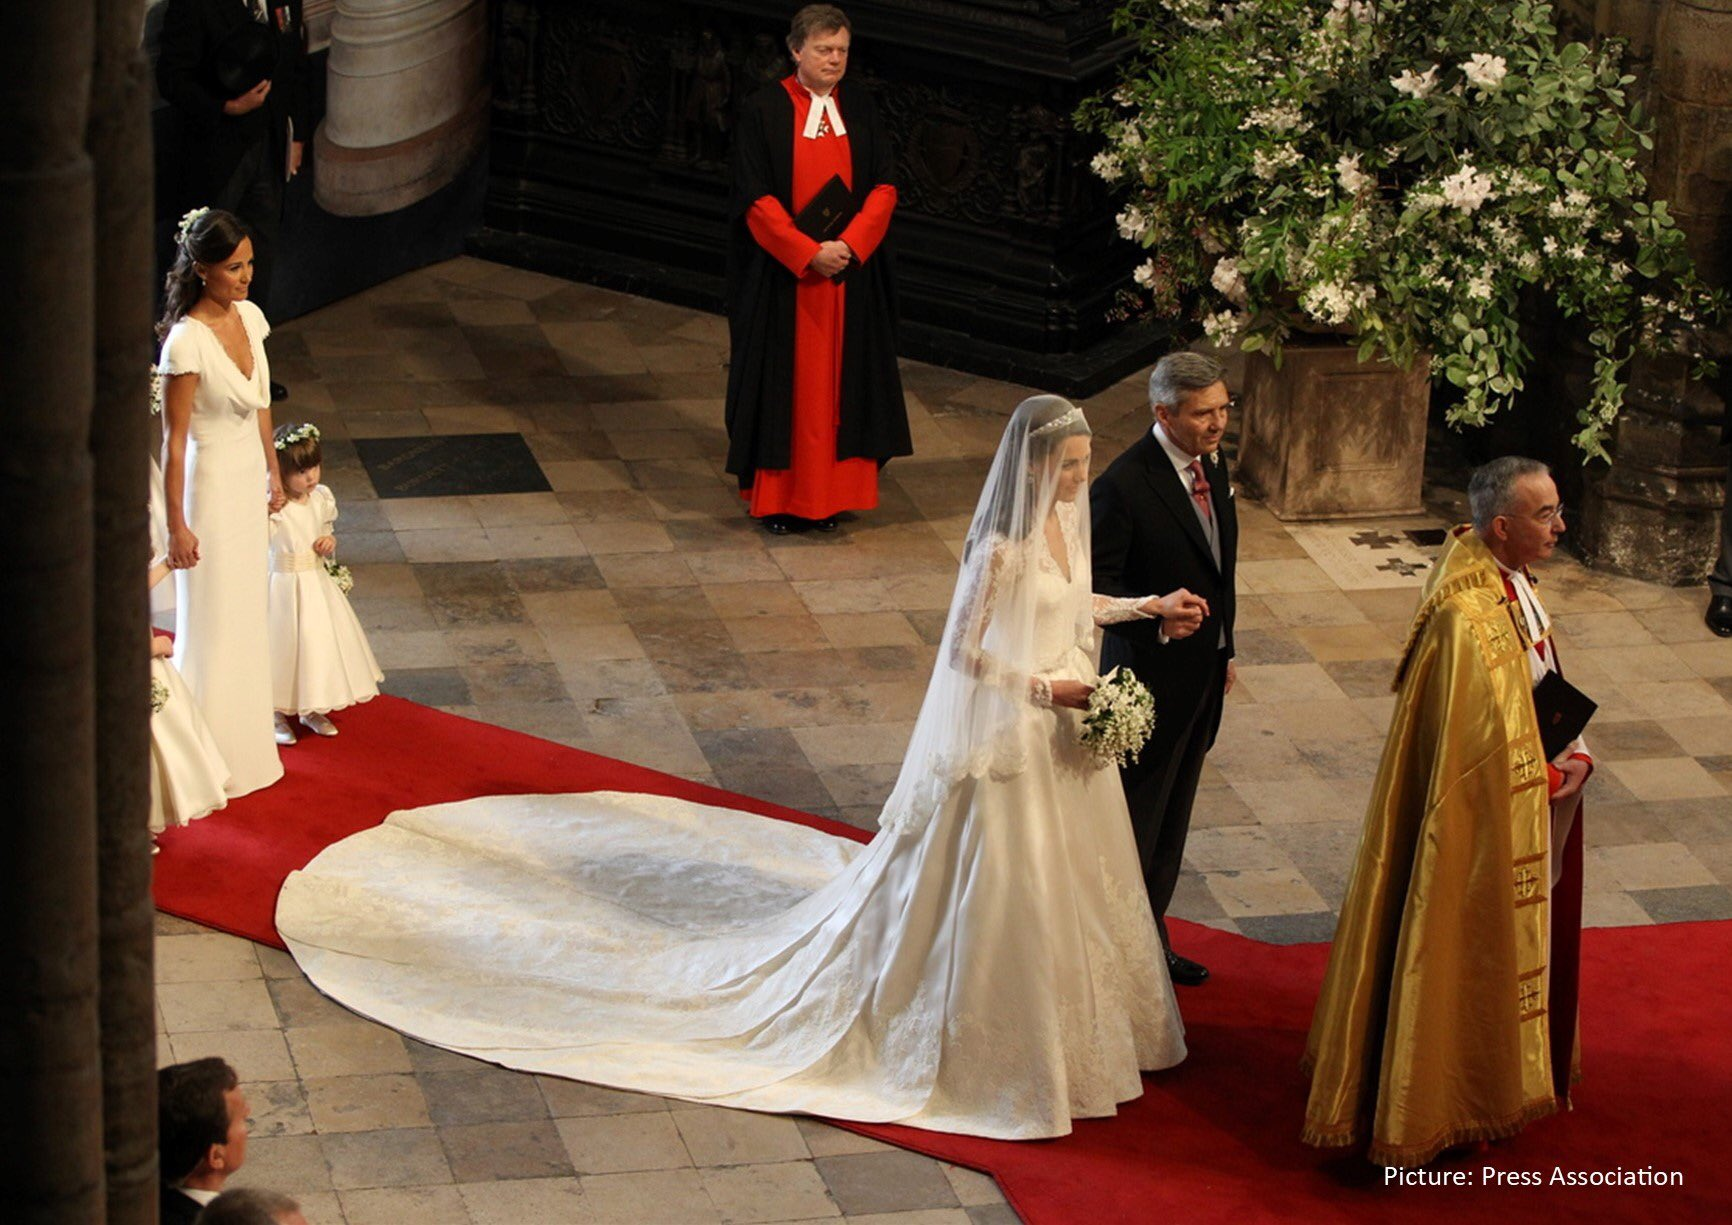 The Duchess of Cambirdge walking down the aisle